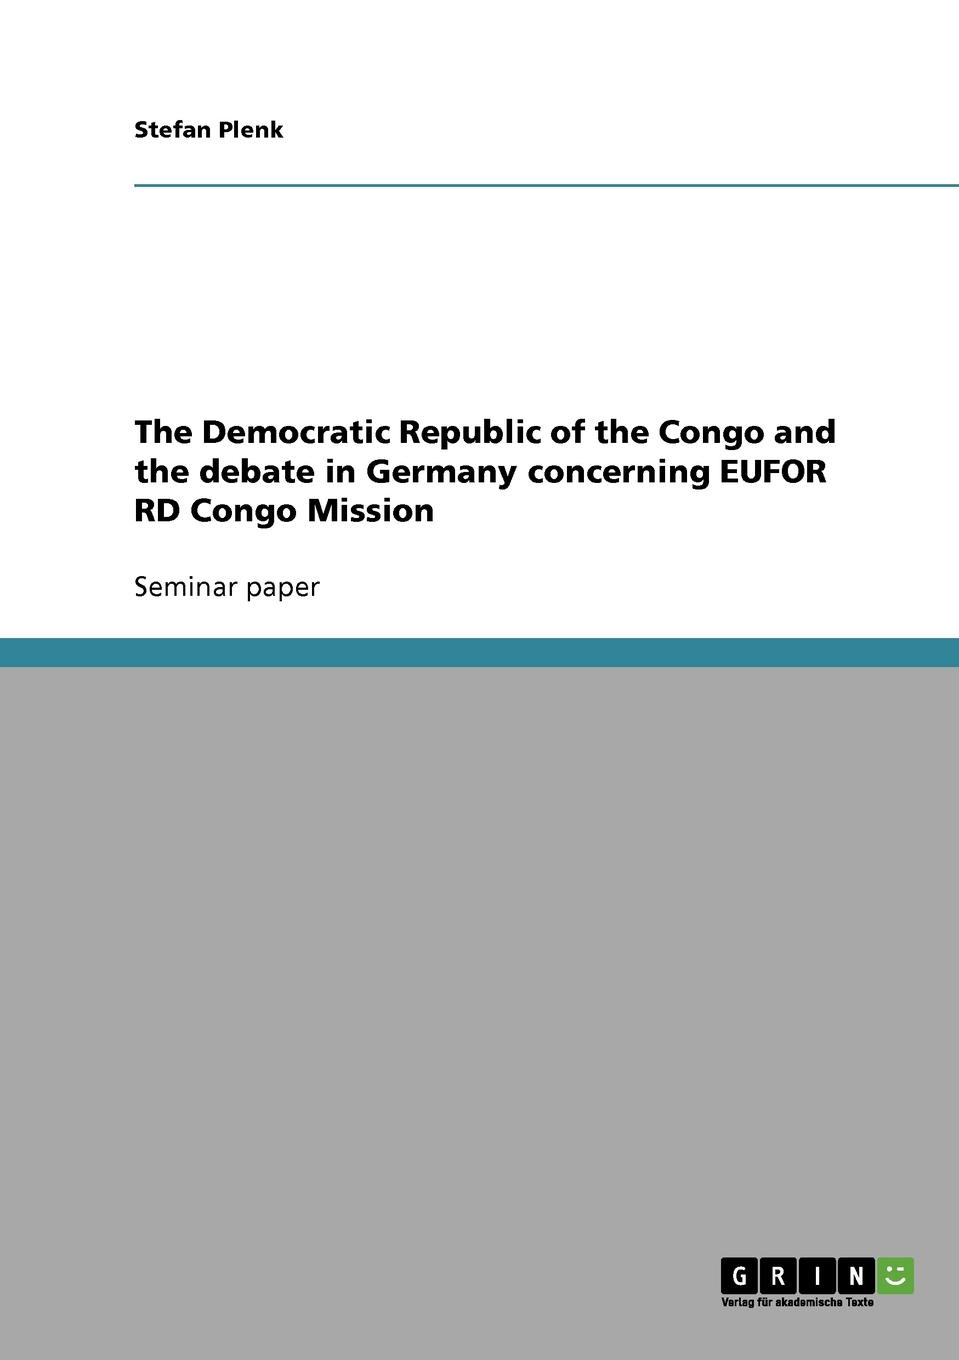 Stefan Plenk The Democratic Republic of the Congo and the debate in Germany concerning EUFOR RD Congo Mission цена